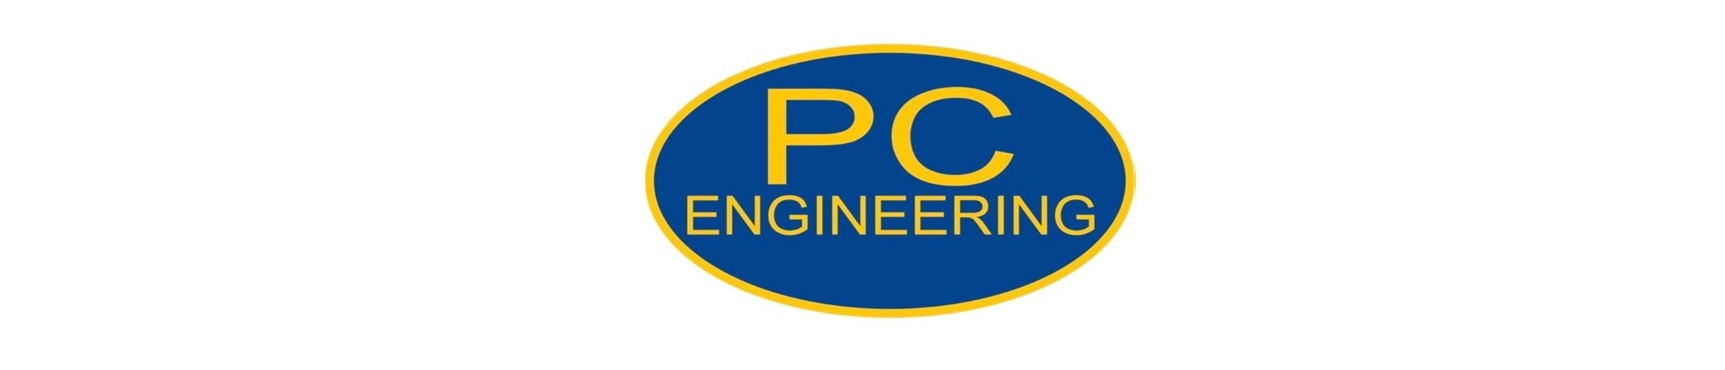 PC Engineering | Buy New Trailers | Bunbury and the South West